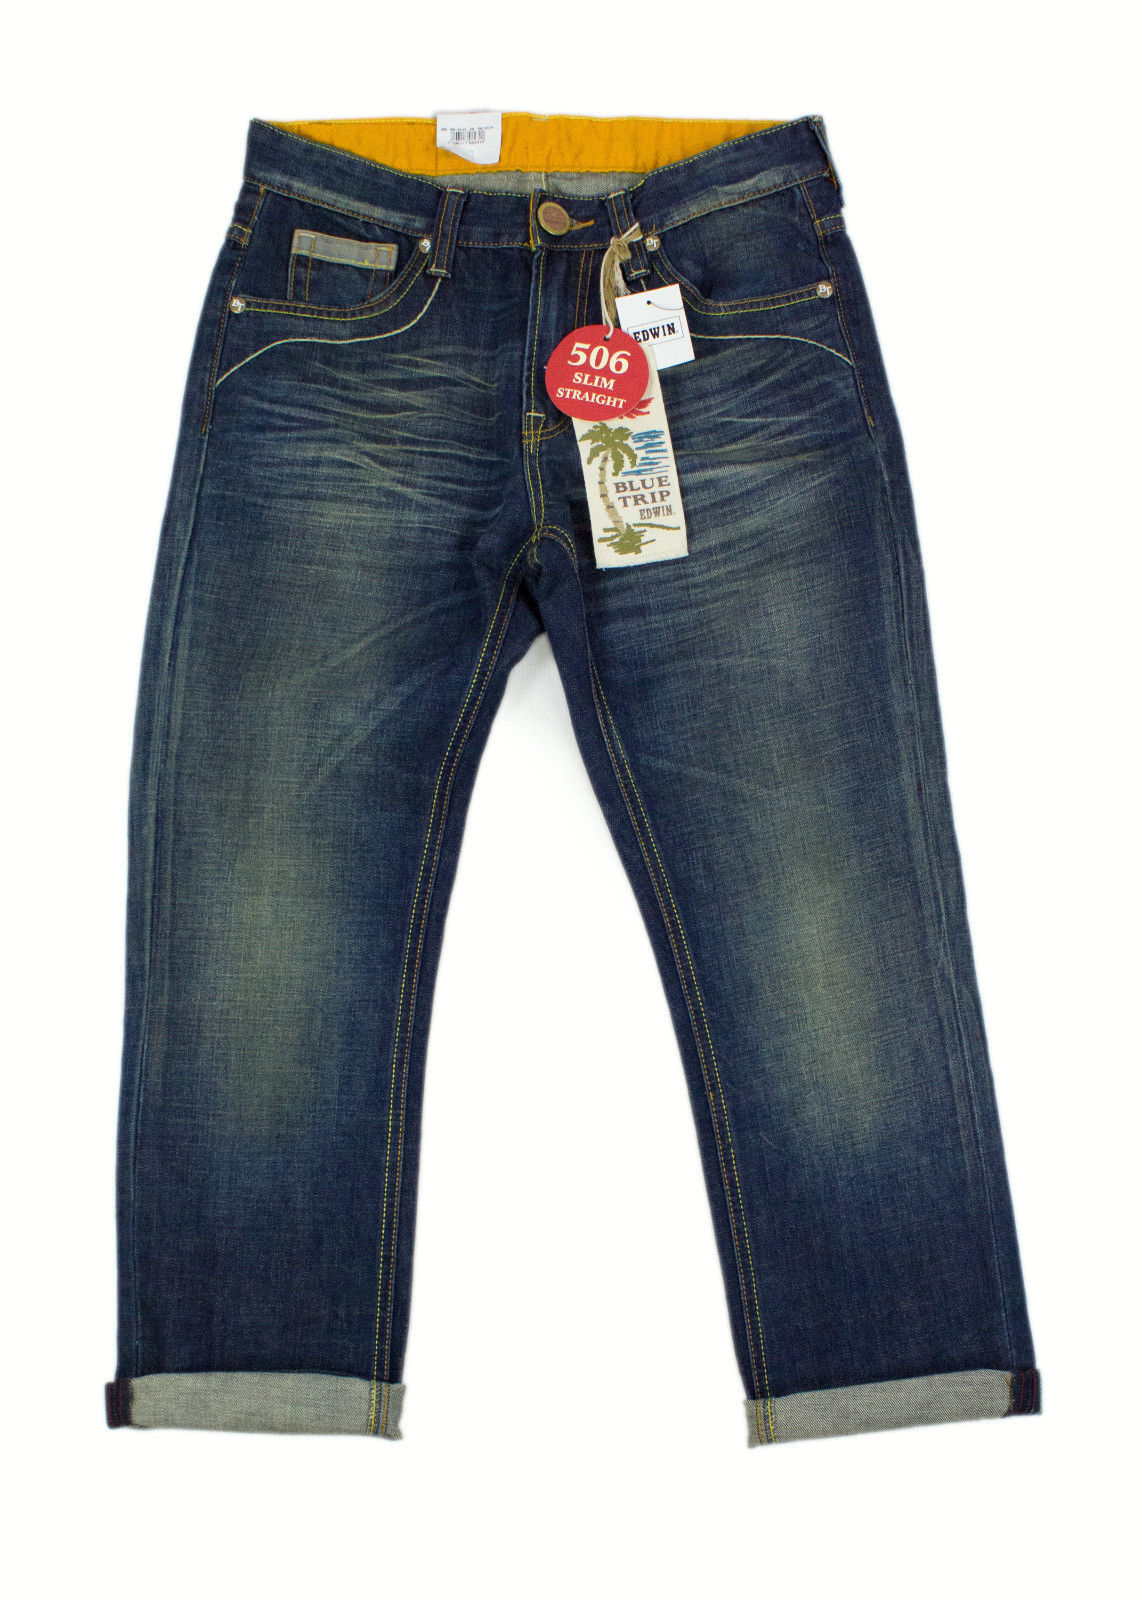 EDWIN Blue Trip 506 Slim Straight Men's Jeans SIZE W31/L26 - secondfirst